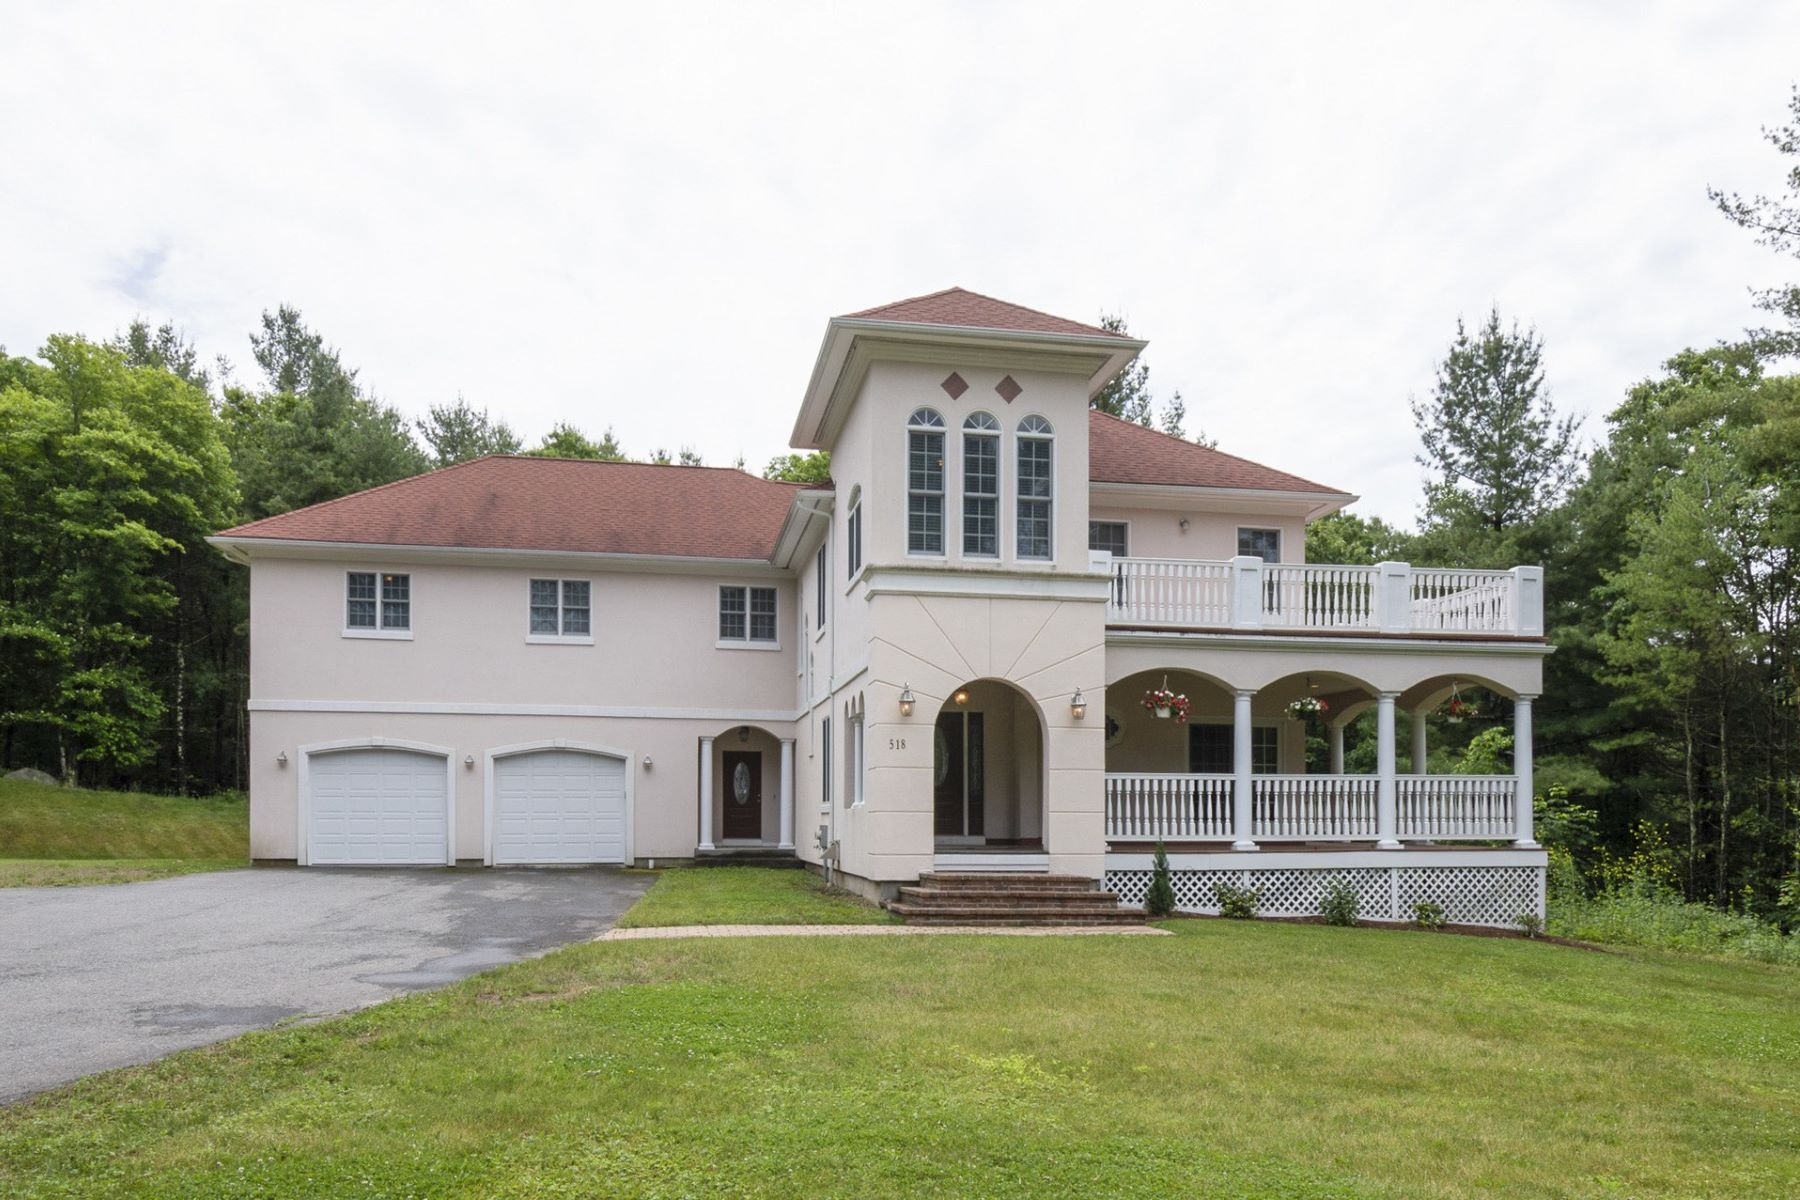 Single Family Homes for Sale at 518 Buxton St., North Smithfield, RI North Smithfield, Rhode Island 02896 United States